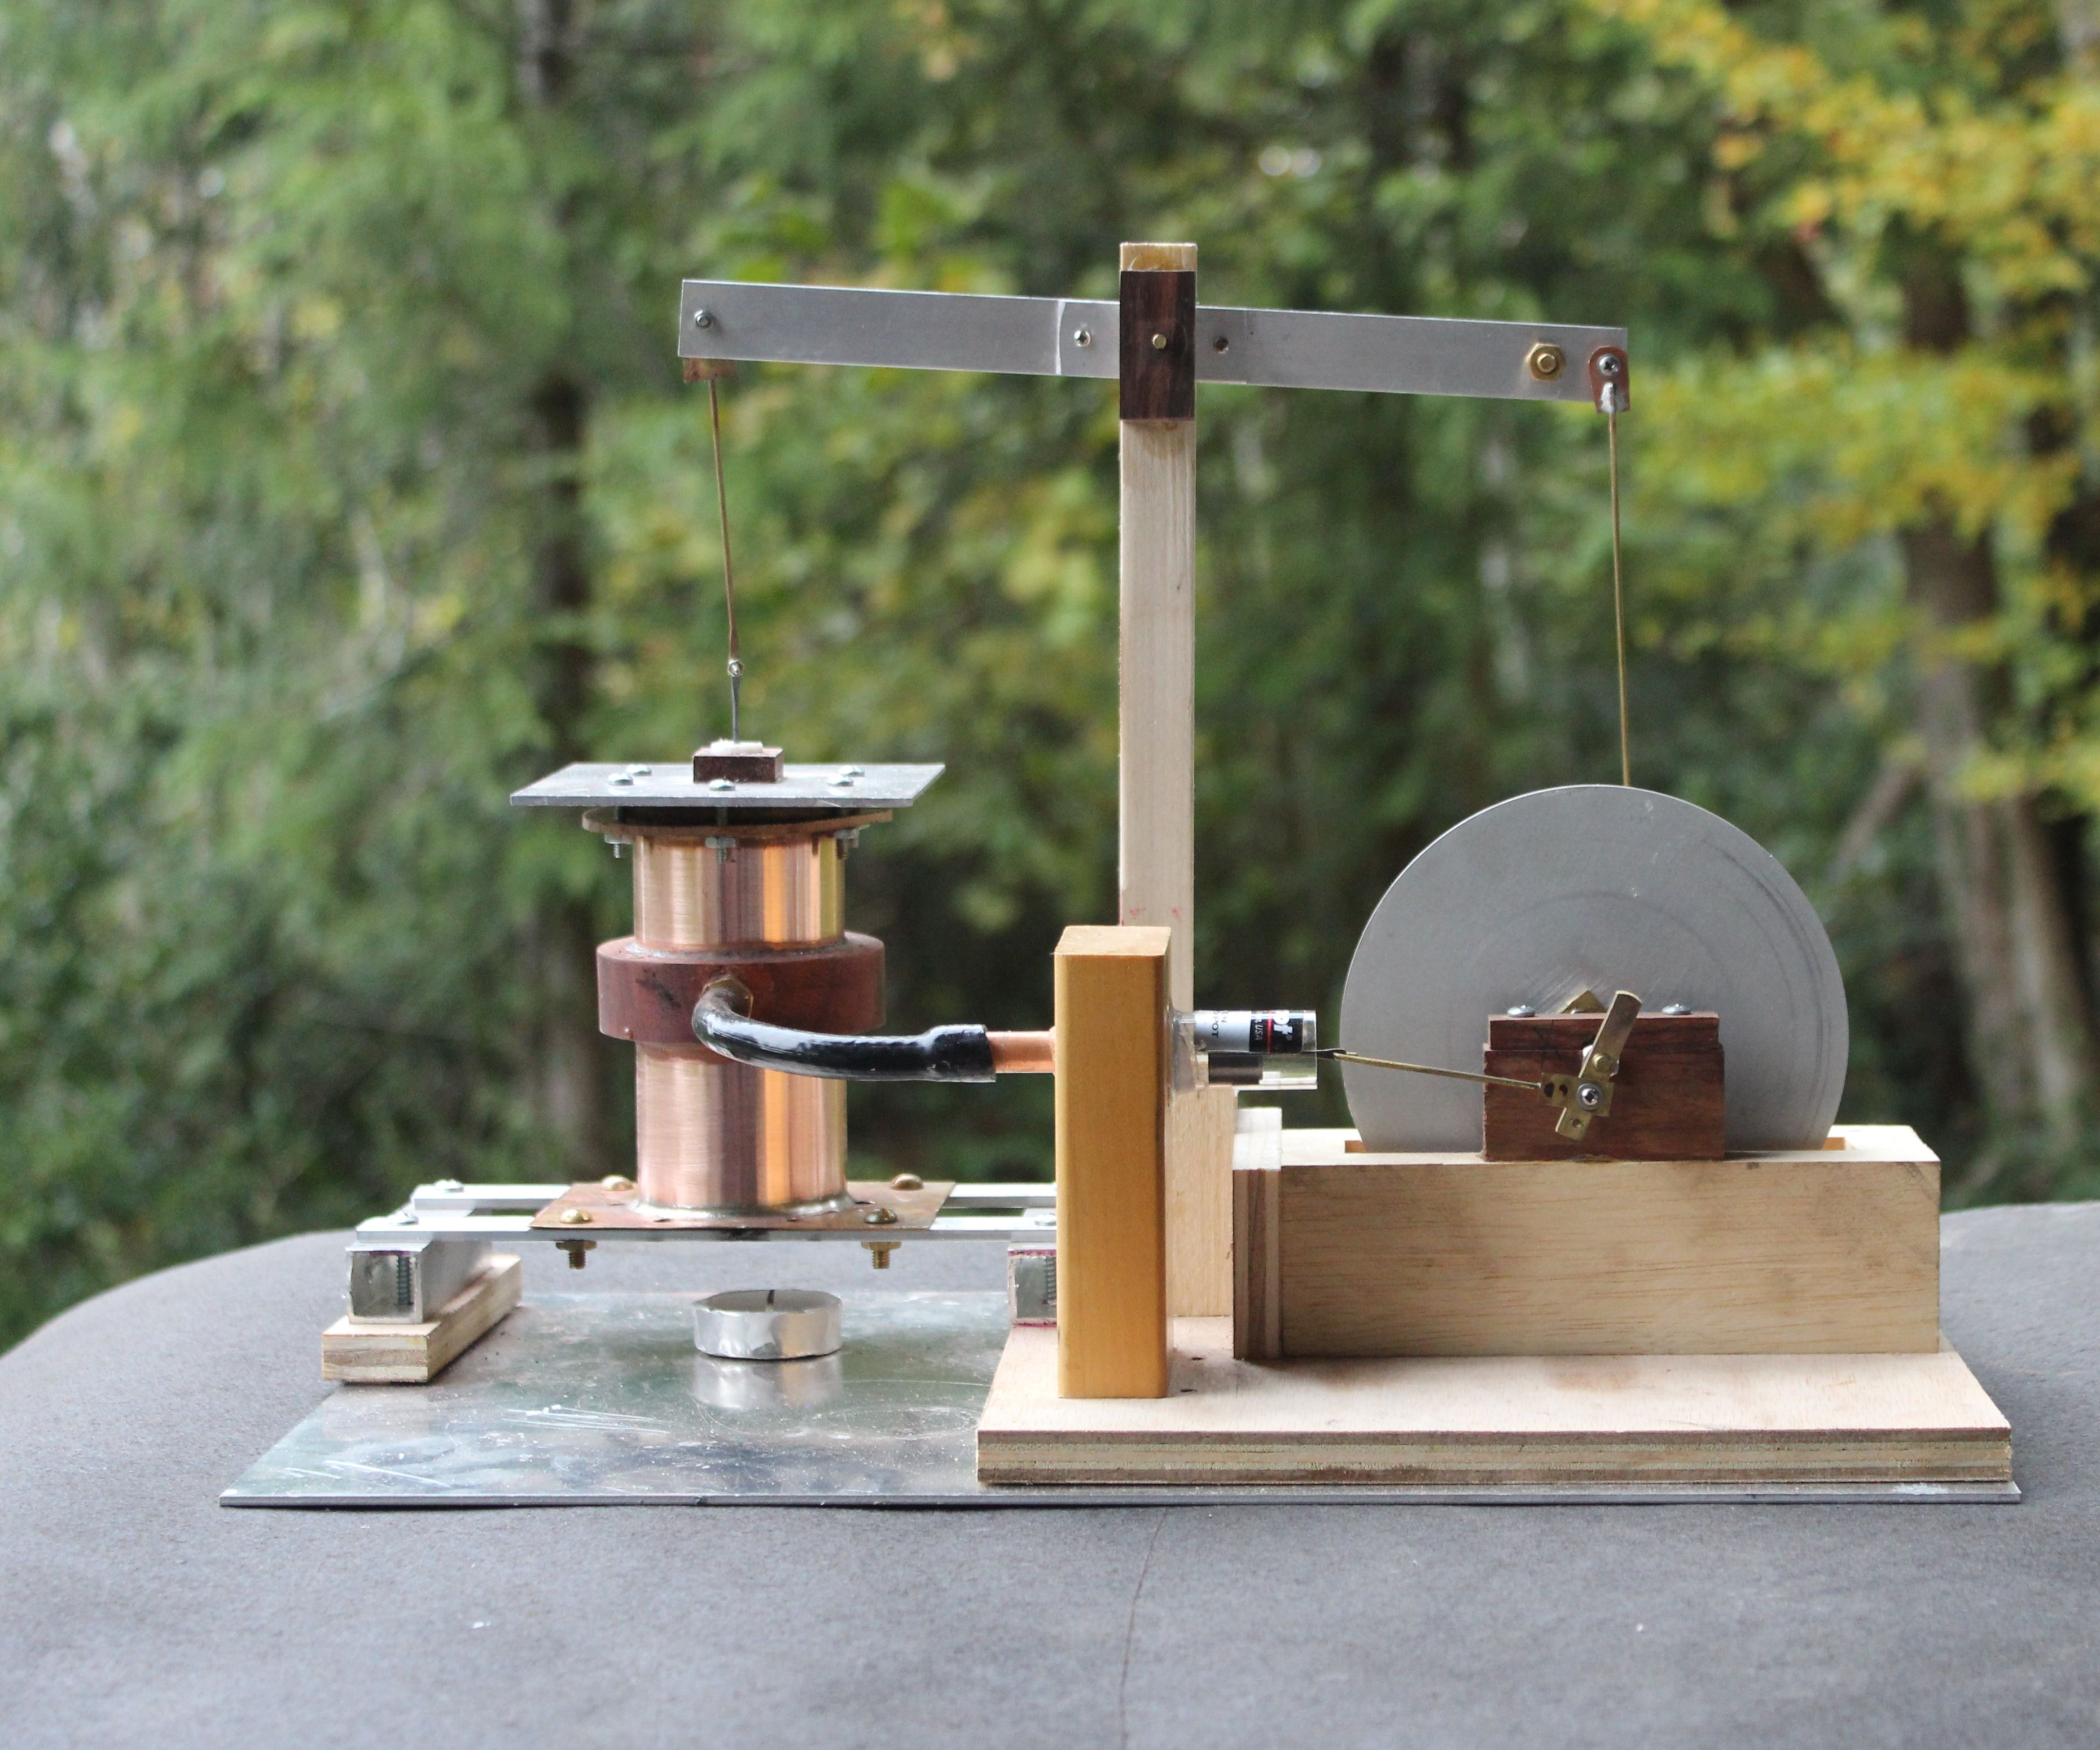 Design criteria for Stirling cycle engine